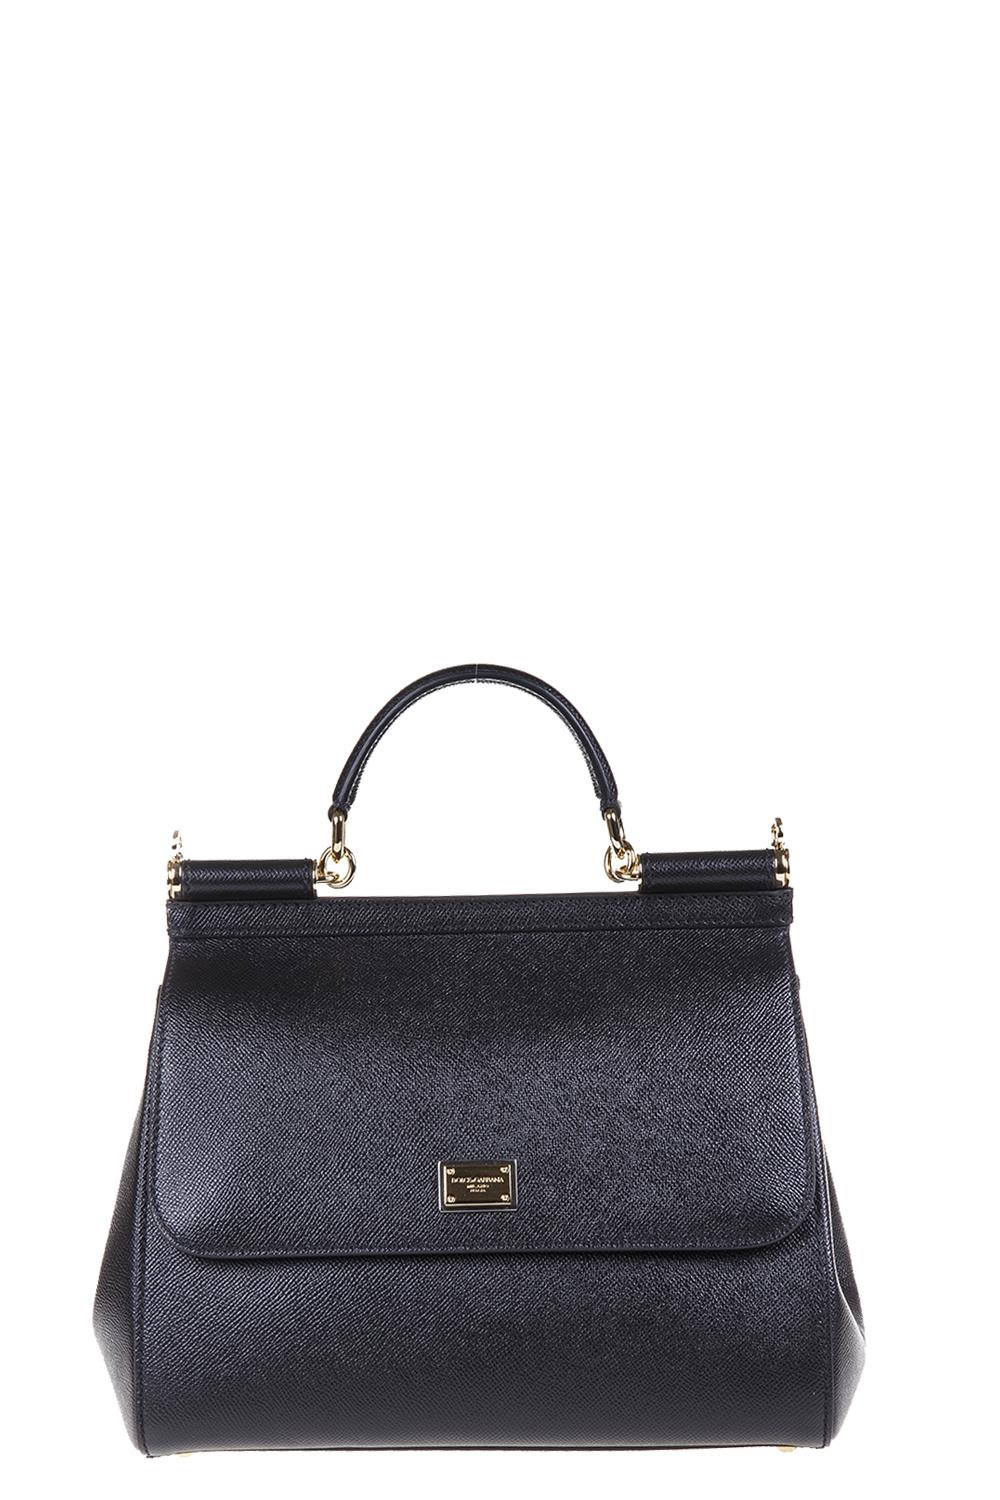 Dolce & Gabbana Black Dauphine leather tote riSuQicy